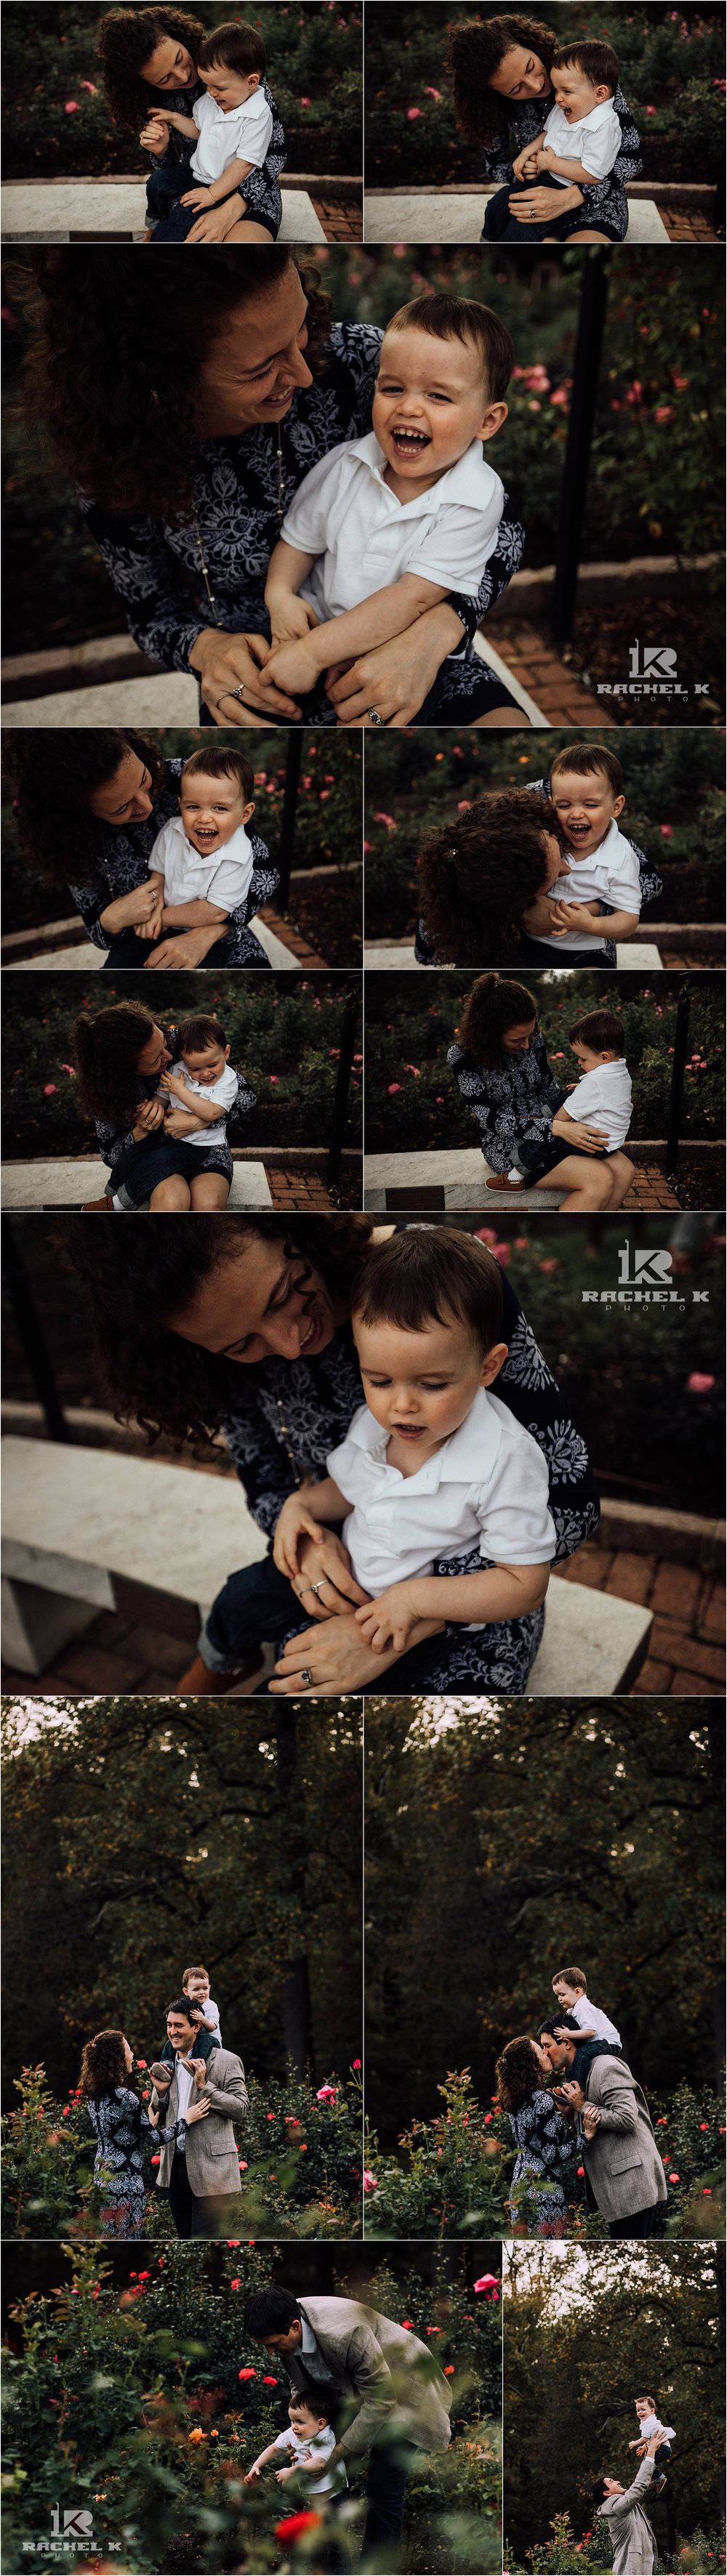 Fairfax Virginia family session with little boy by Rachel K Photo